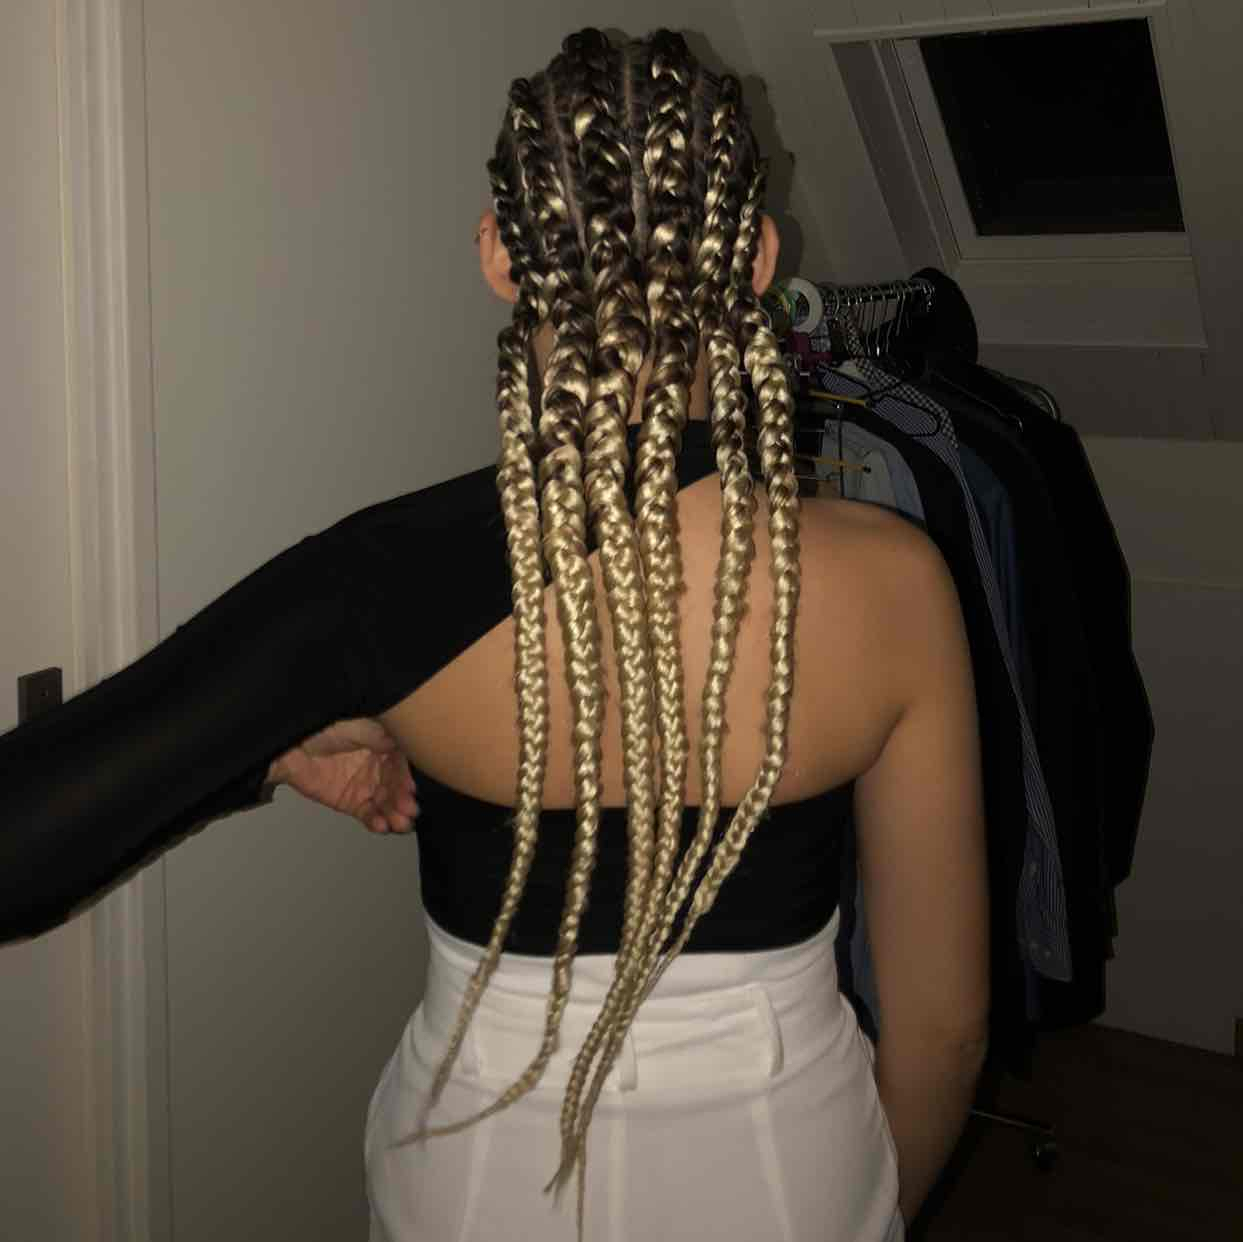 salon de coiffure afro tresse tresses box braids crochet braids vanilles tissages paris 75 77 78 91 92 93 94 95 JDBJFFBH